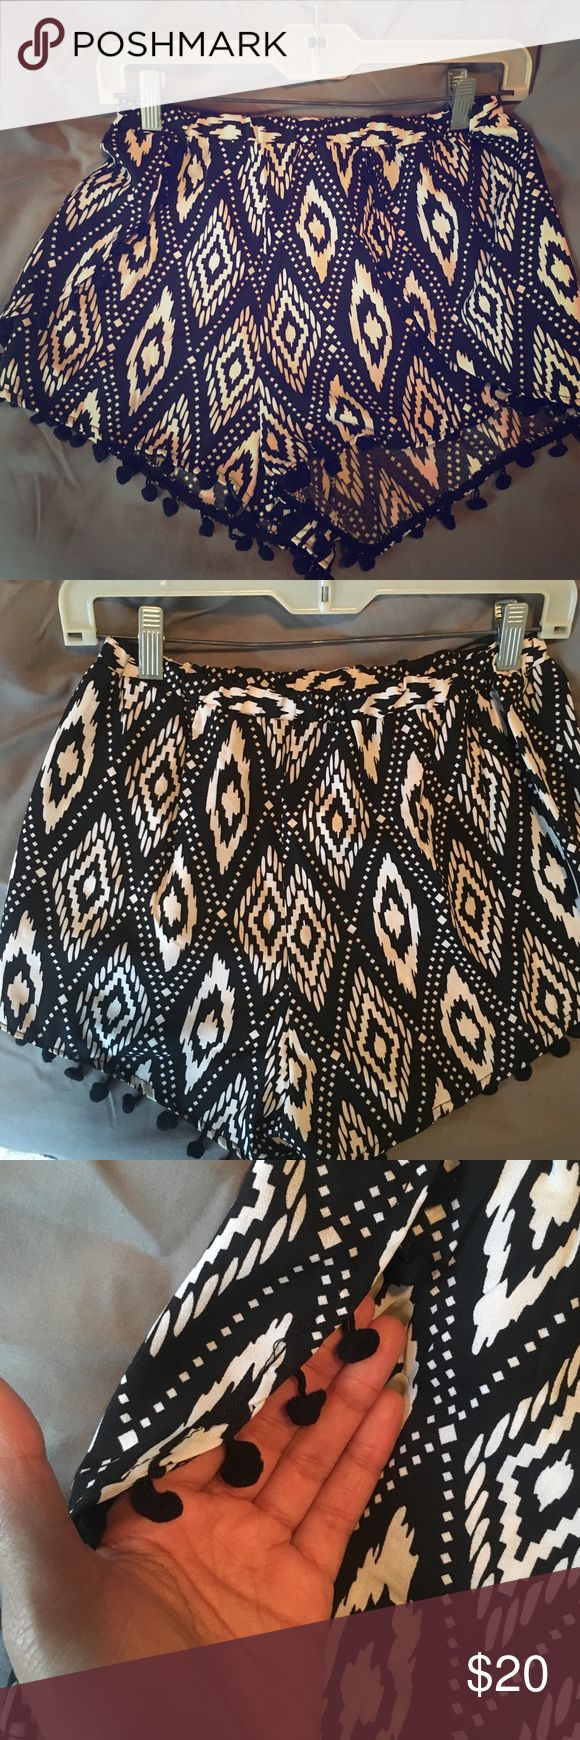 Black and white boho tribal shorts size M Super cute & trendy tribal shorts were purchased last summer & were never ever worn. No signs of damage or wear & tear 😊 As pictured there are little black pompoms along the bottom and on flaps of the shorts! Perfect for the warmer weather we'll have in a few months 🌞 Go Jane Shorts